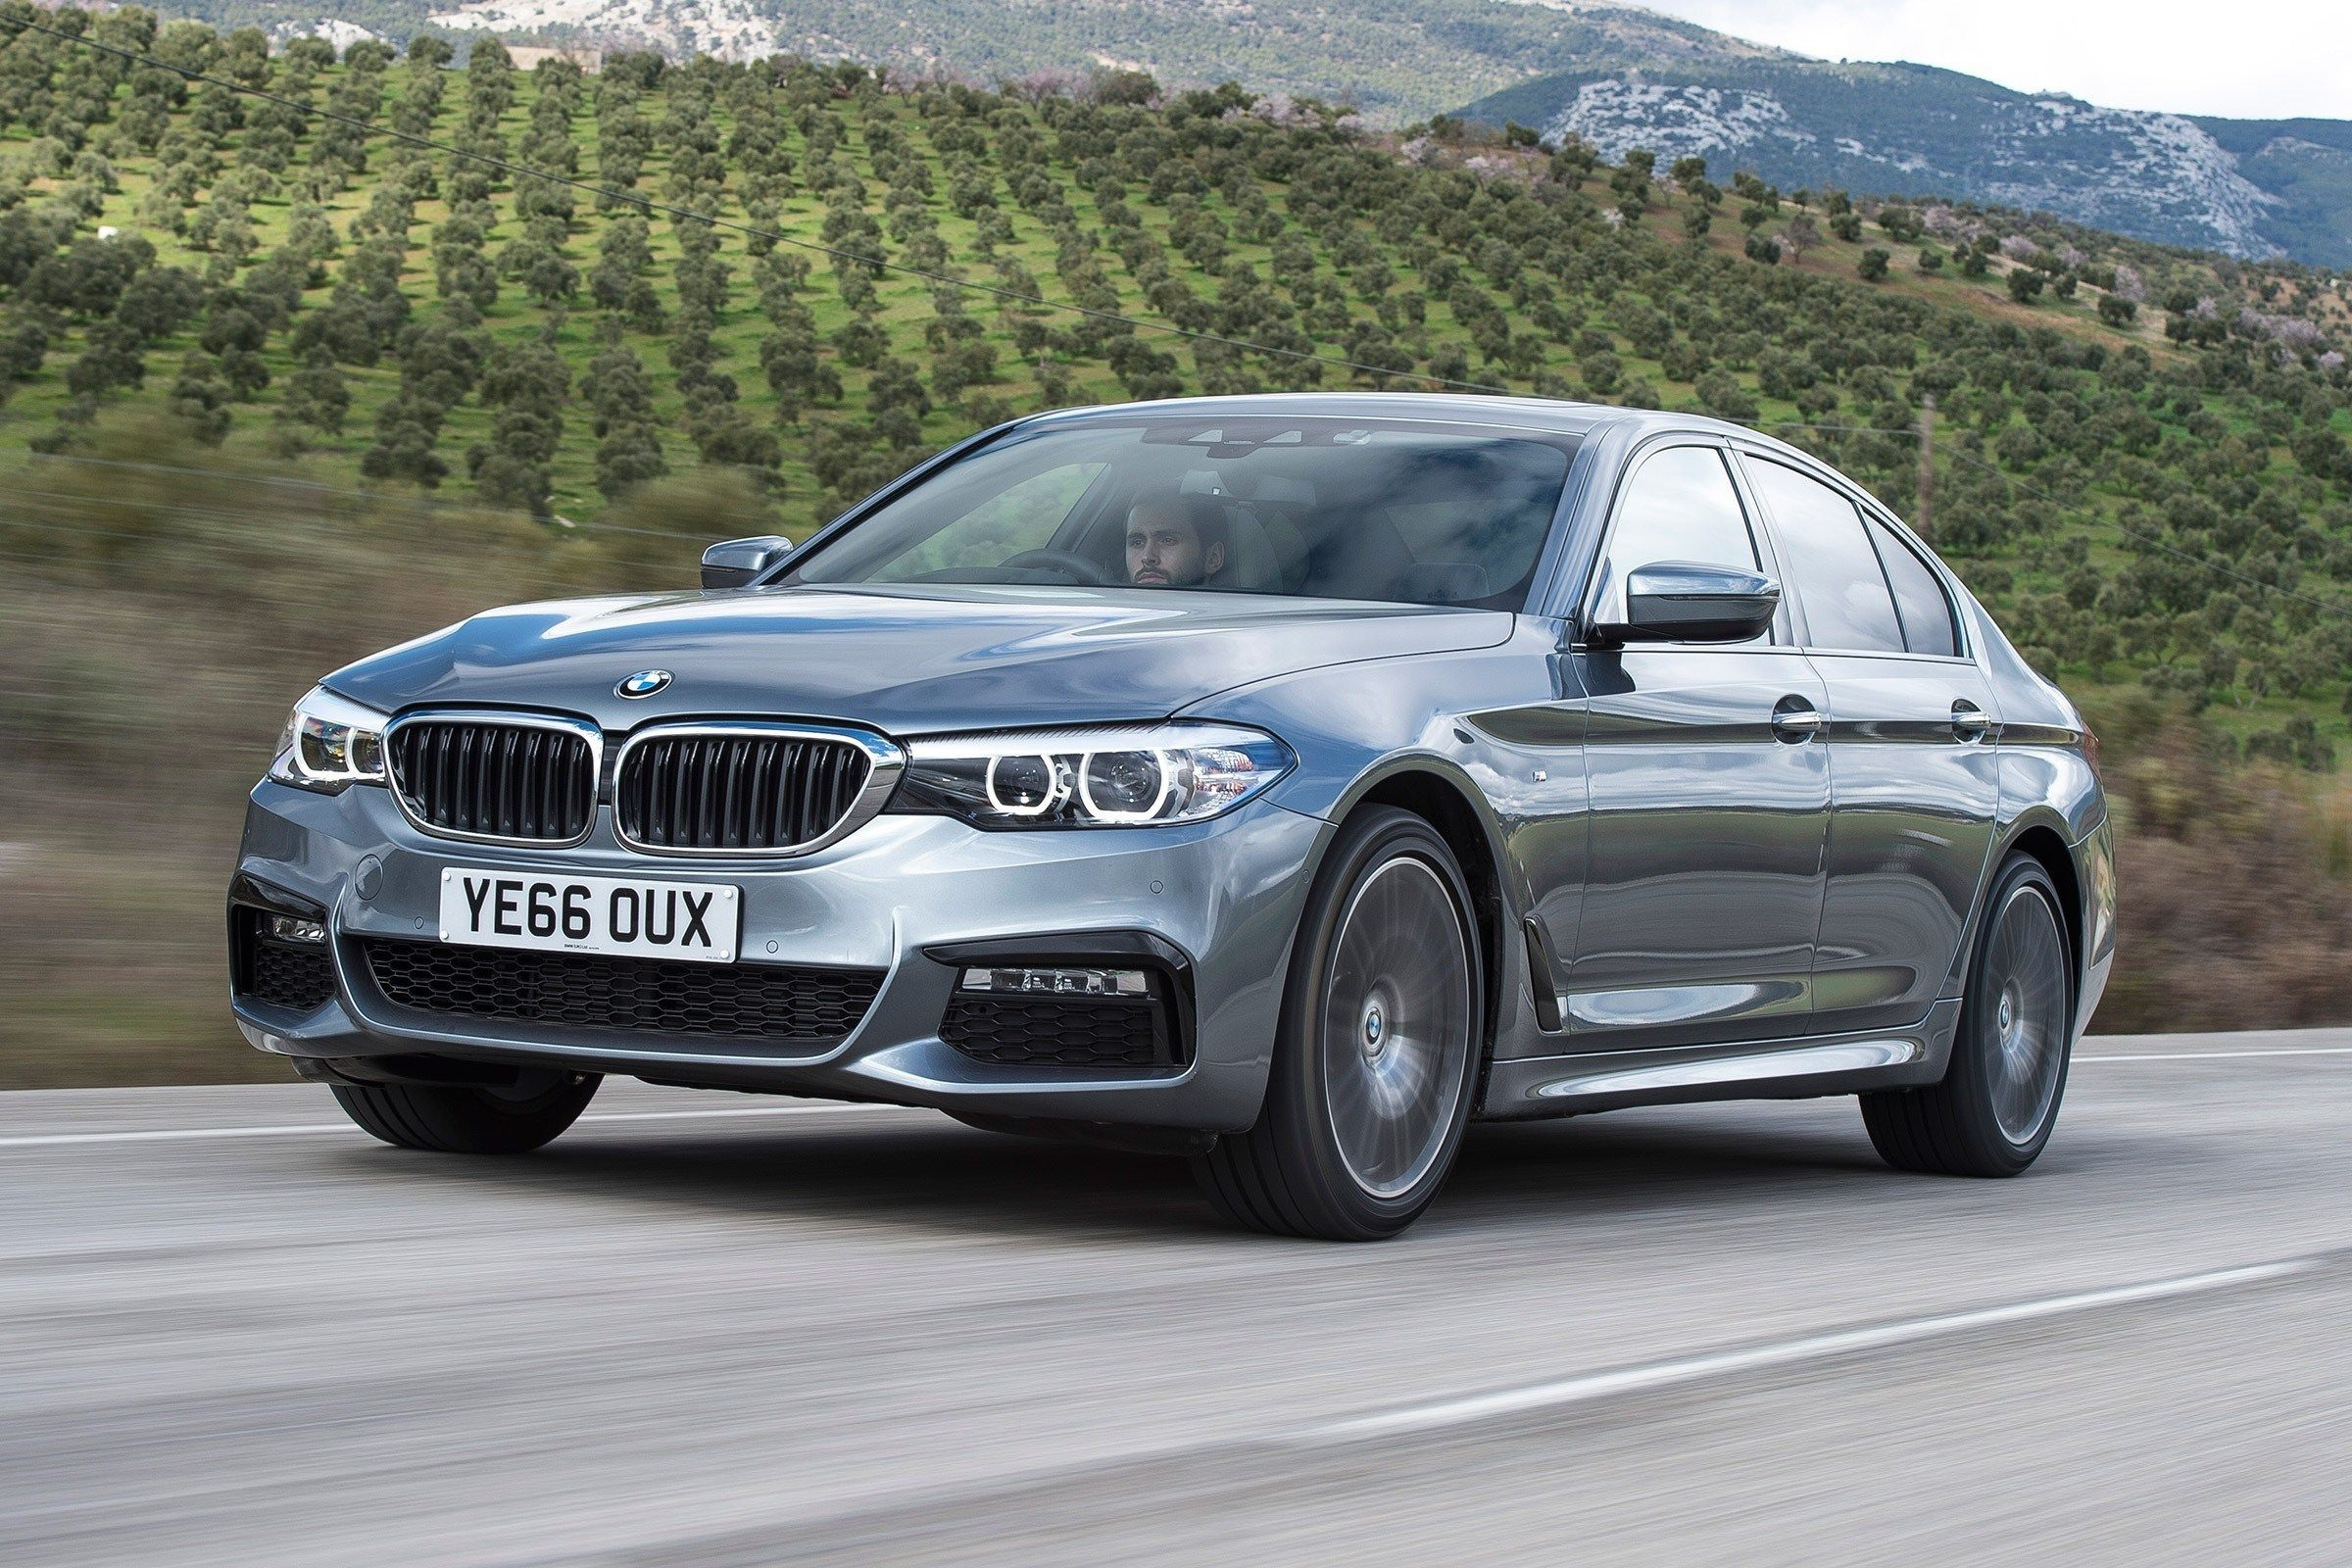 2019 Bmw 550i Changes And Price It Has Turn Out To Be Very